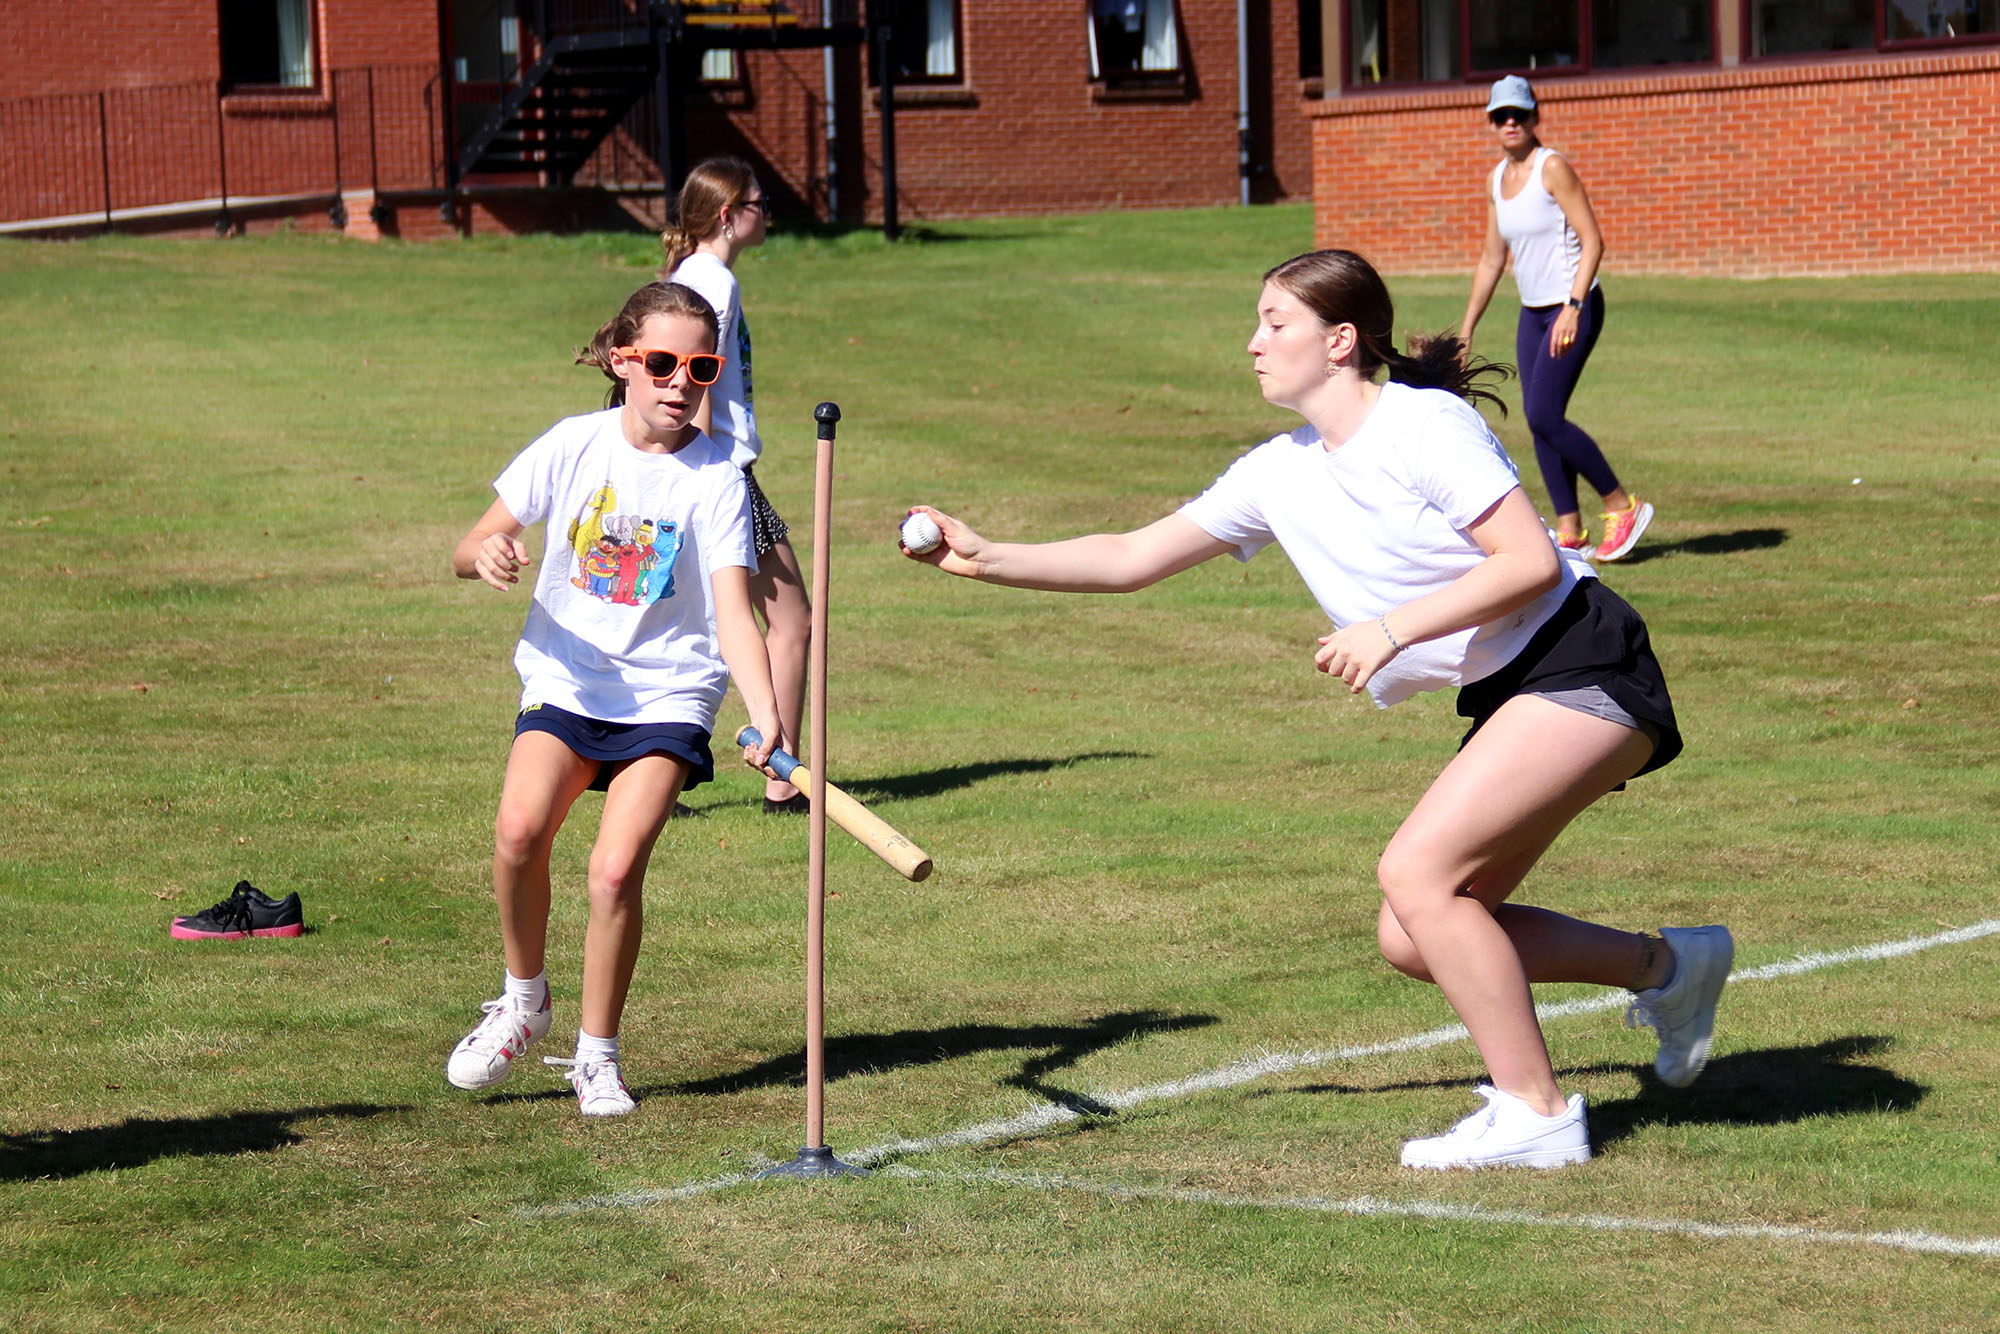 girls play rounders